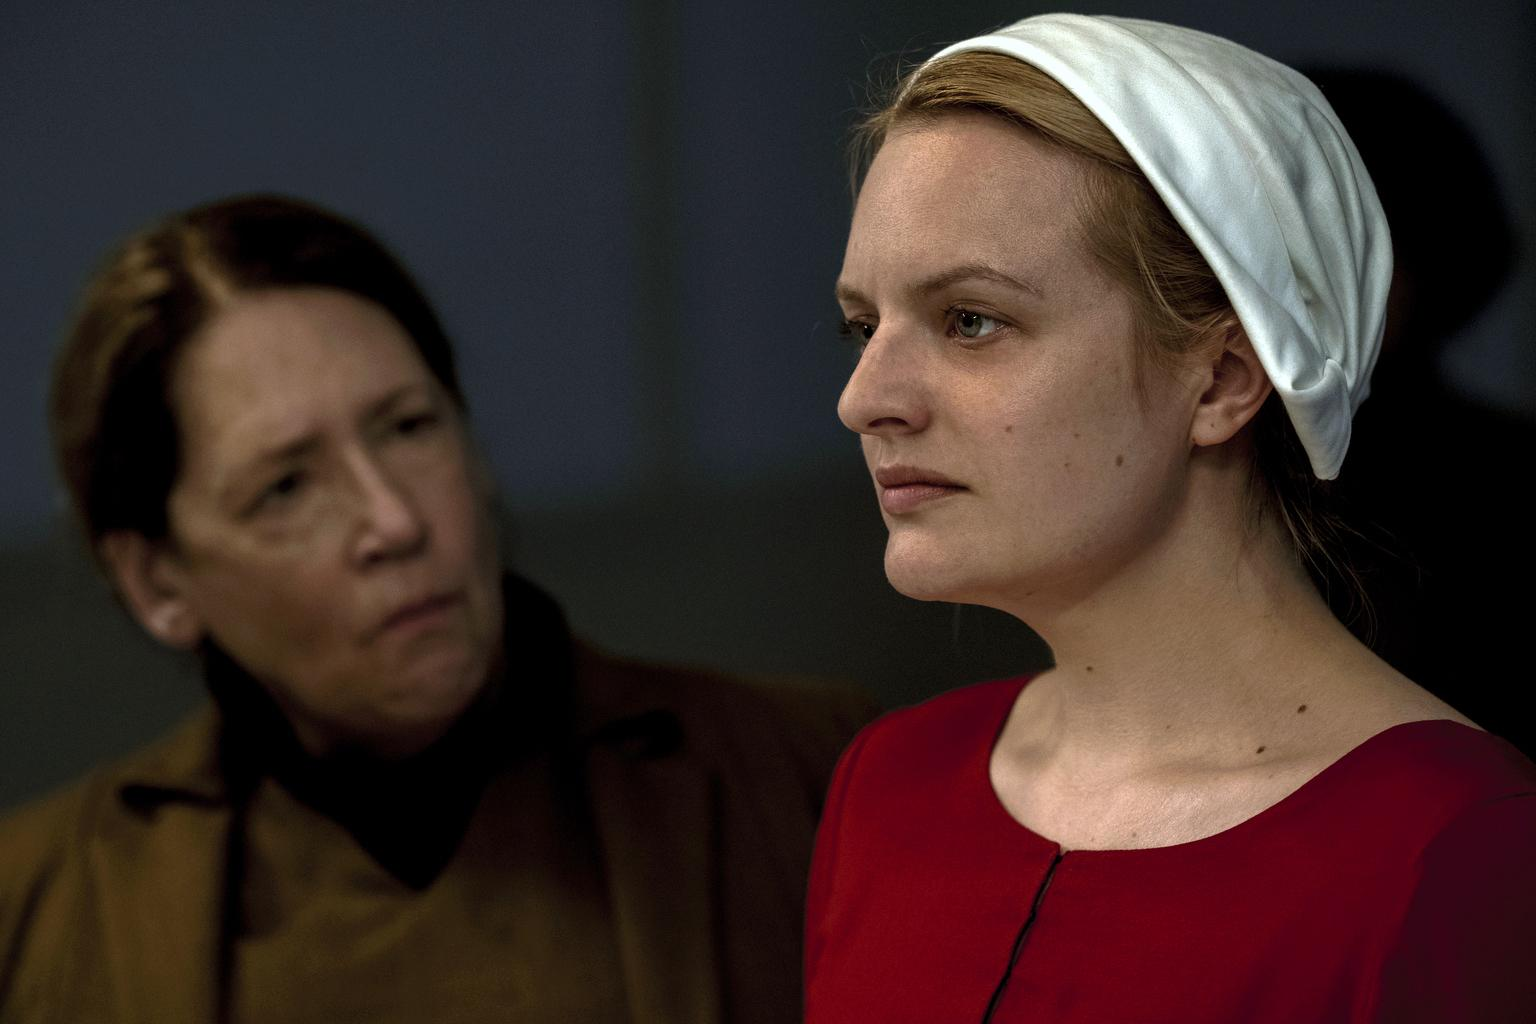 Elisabeth Moss compares 'Handmaid's Tale' to Trump's America: 'We're losing' our country